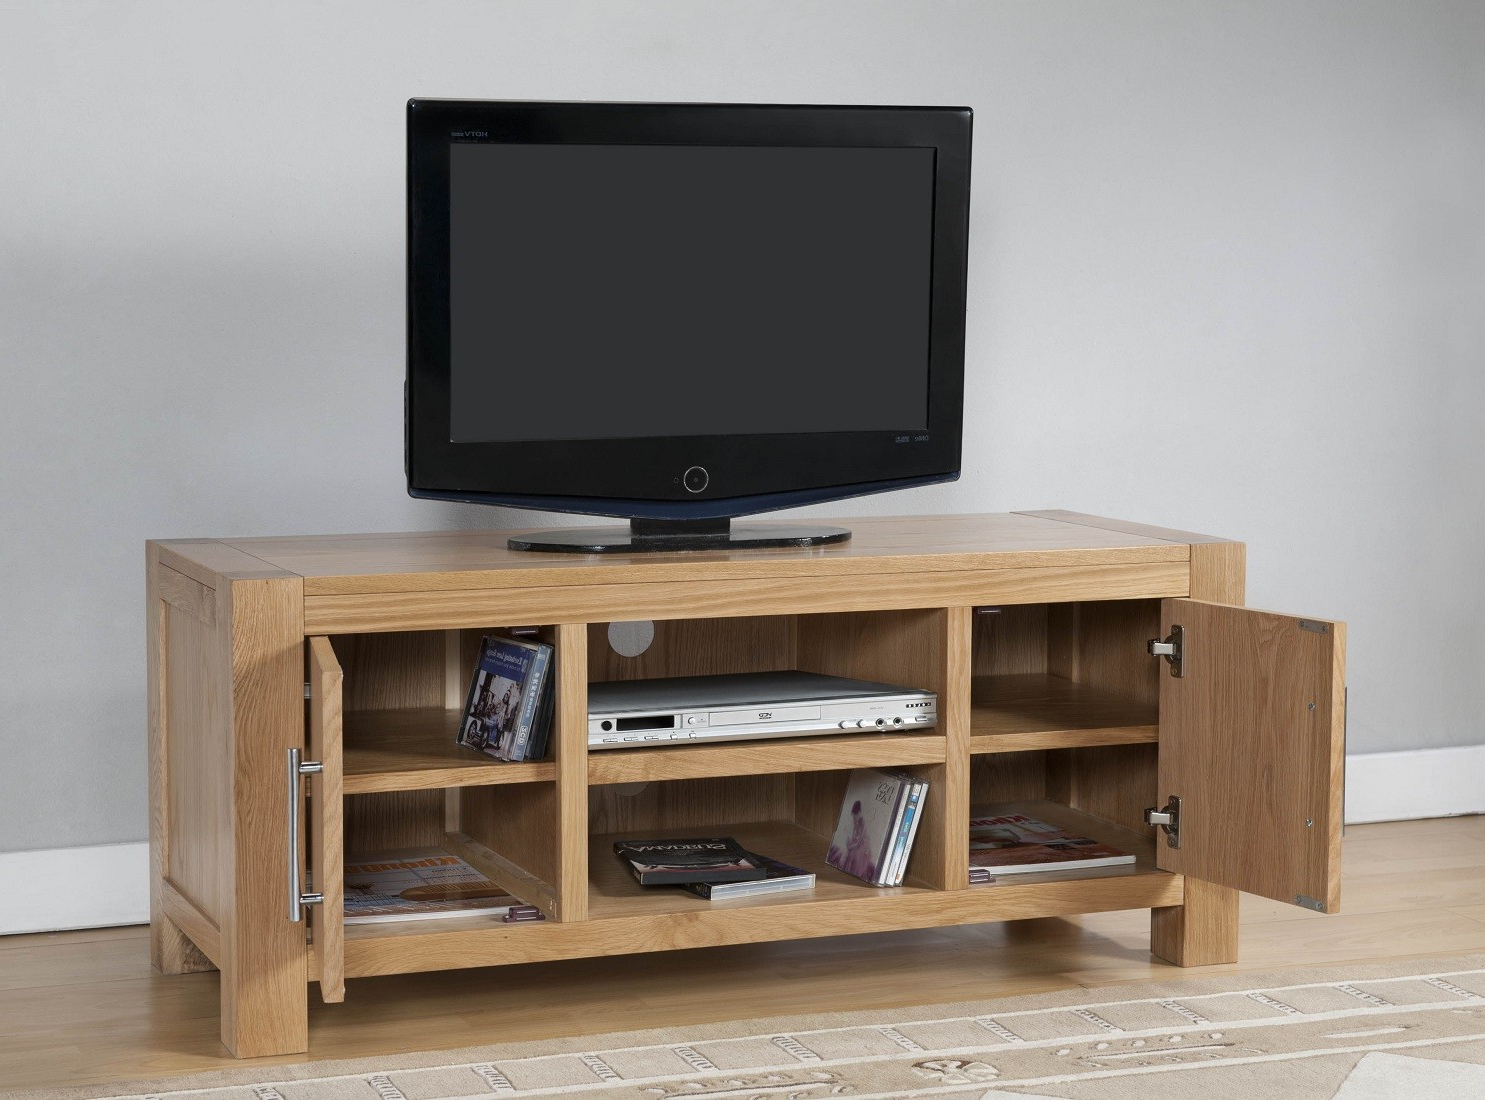 Oak Furniture Uk Throughout Contemporary Oak Tv Cabinets (Gallery 1 of 20)